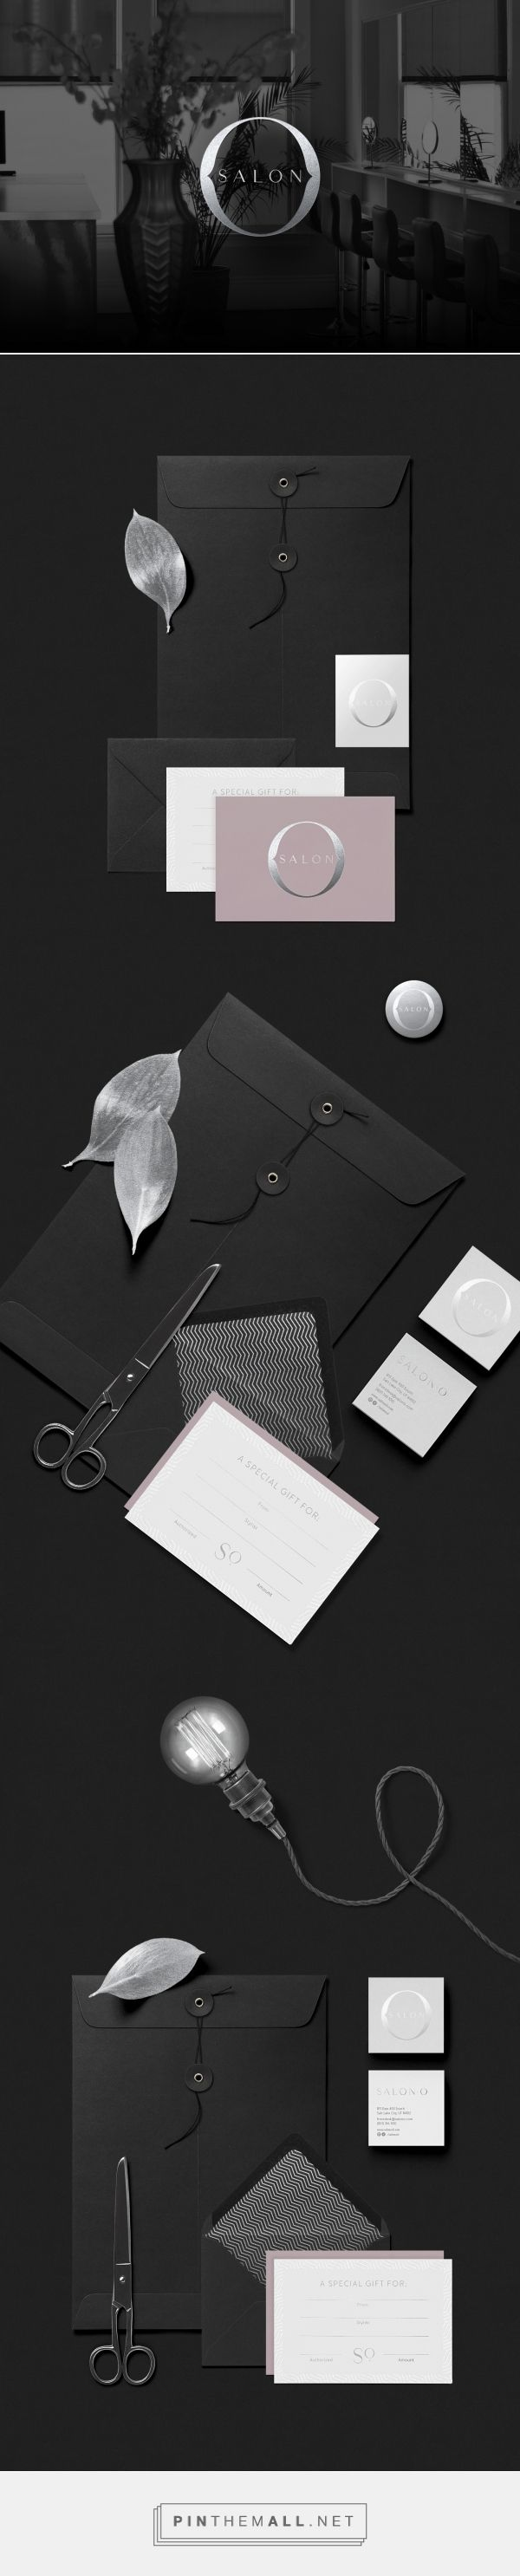 Salon O Brand Identity by Katrina Sutton | Fivestar Branding Agency – Design and Branding Agency & Curated Inspiration Gallery